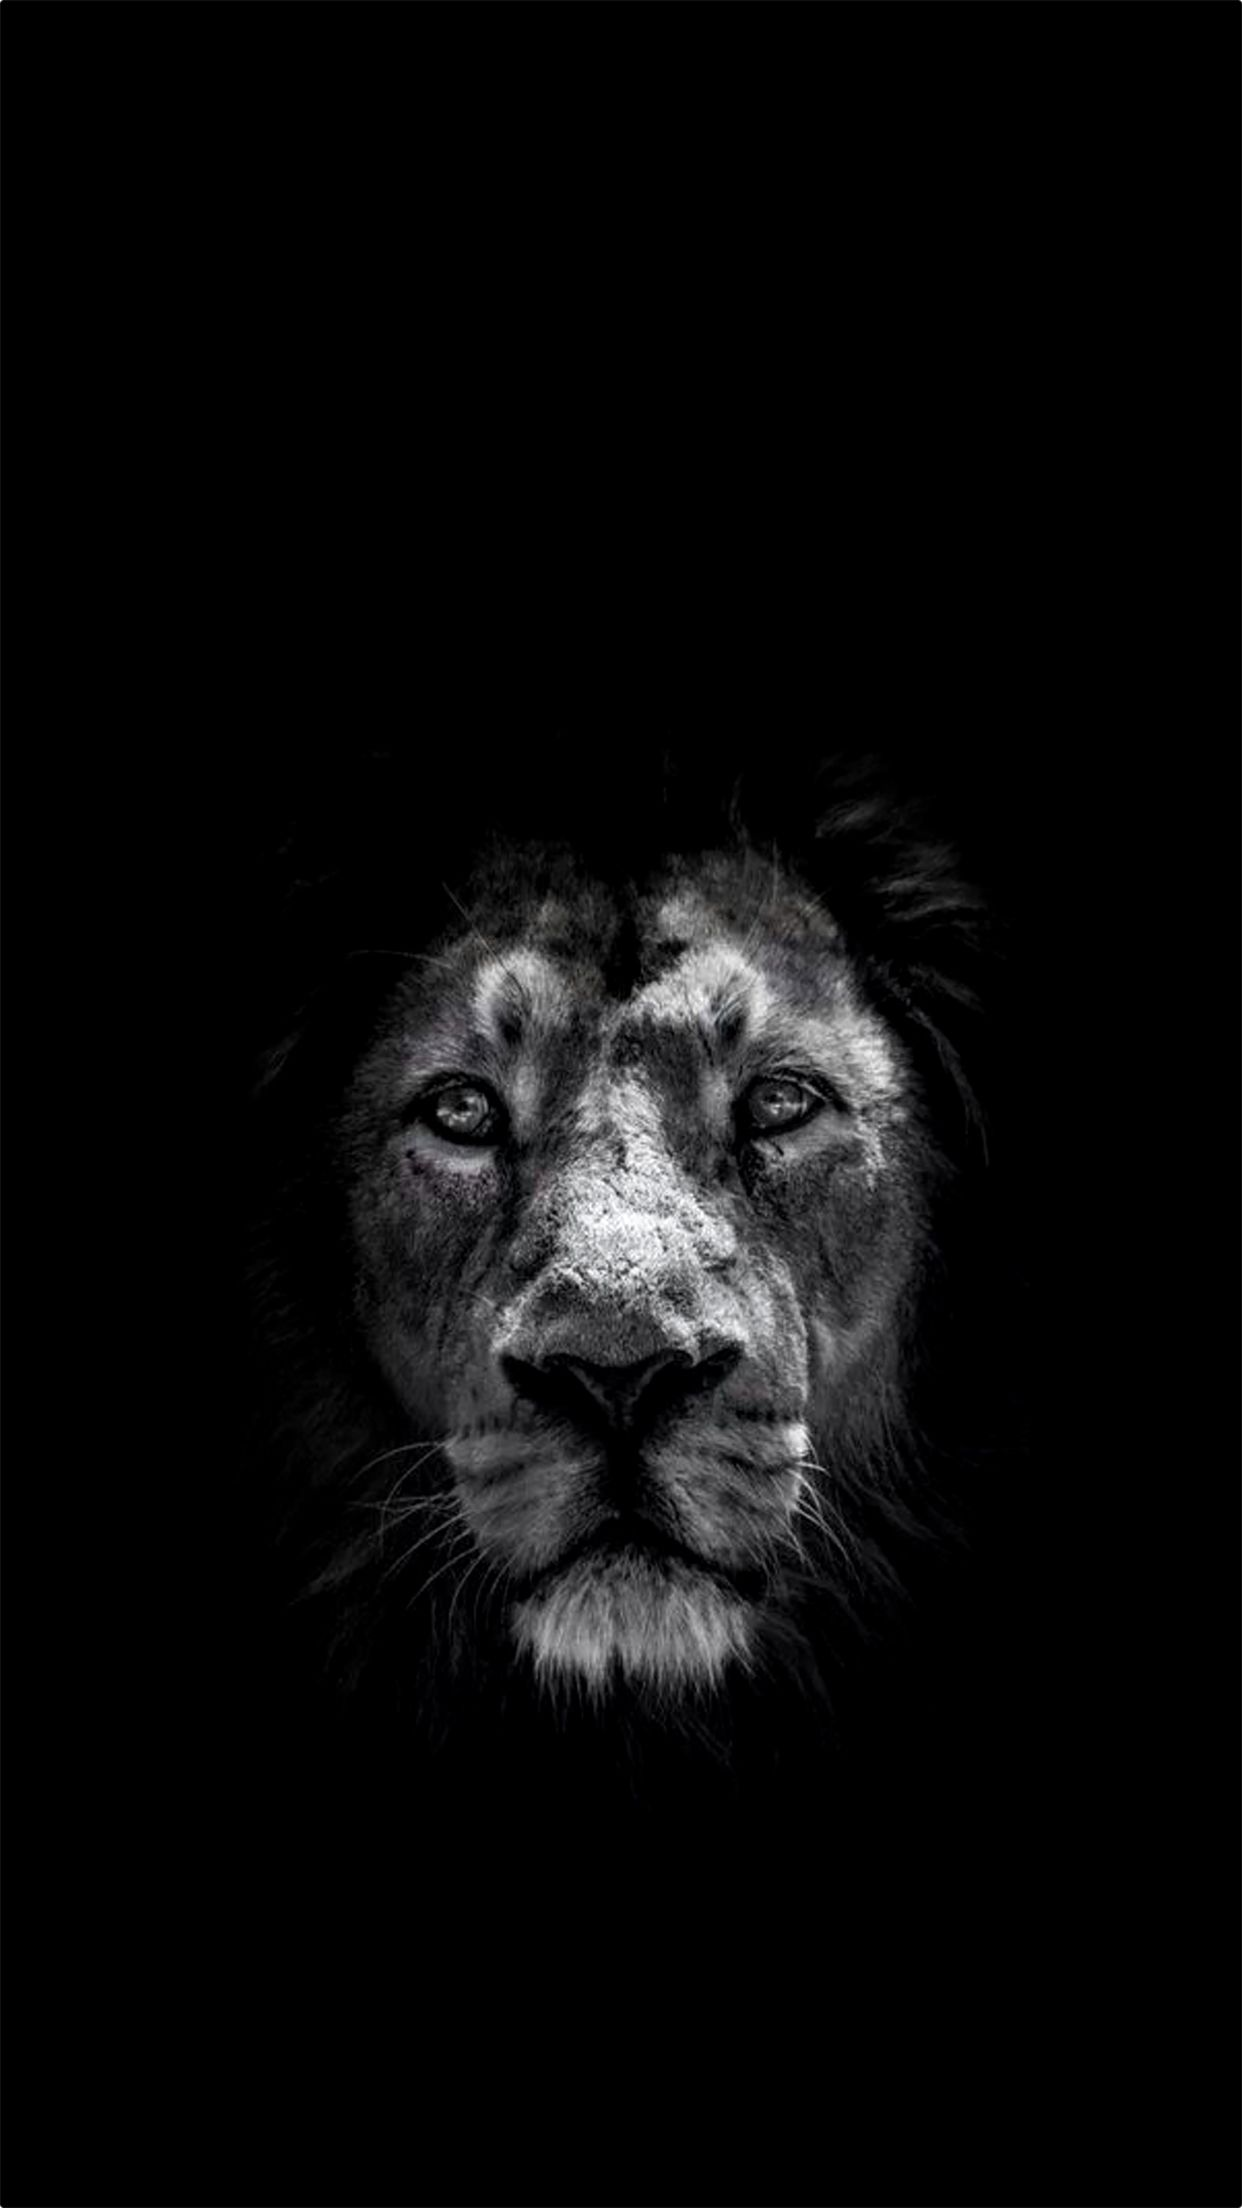 Pin By Seyed Mohsen On M Lion Hd Wallpaper Lion Wallpaper Iphone Animal Wallpaper